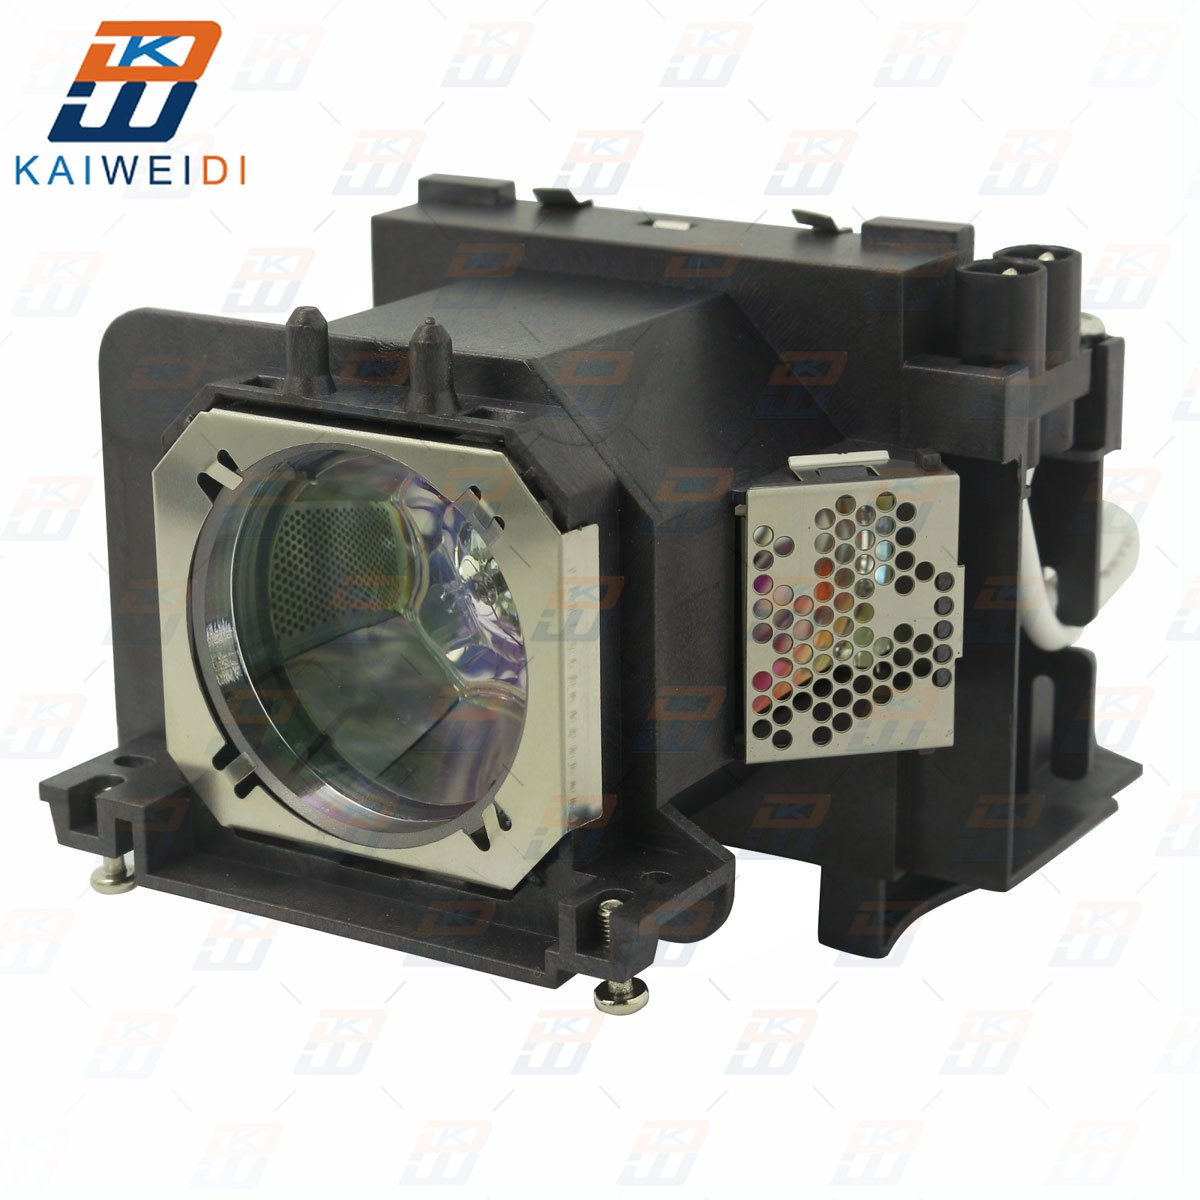 ET-LAV400 PT-VW530 PT-VW535 PT-VW535N PT-VX600 PT-VX605 VX605N VZ570 VZ575 Replacement Projector Lamp For Panasonic